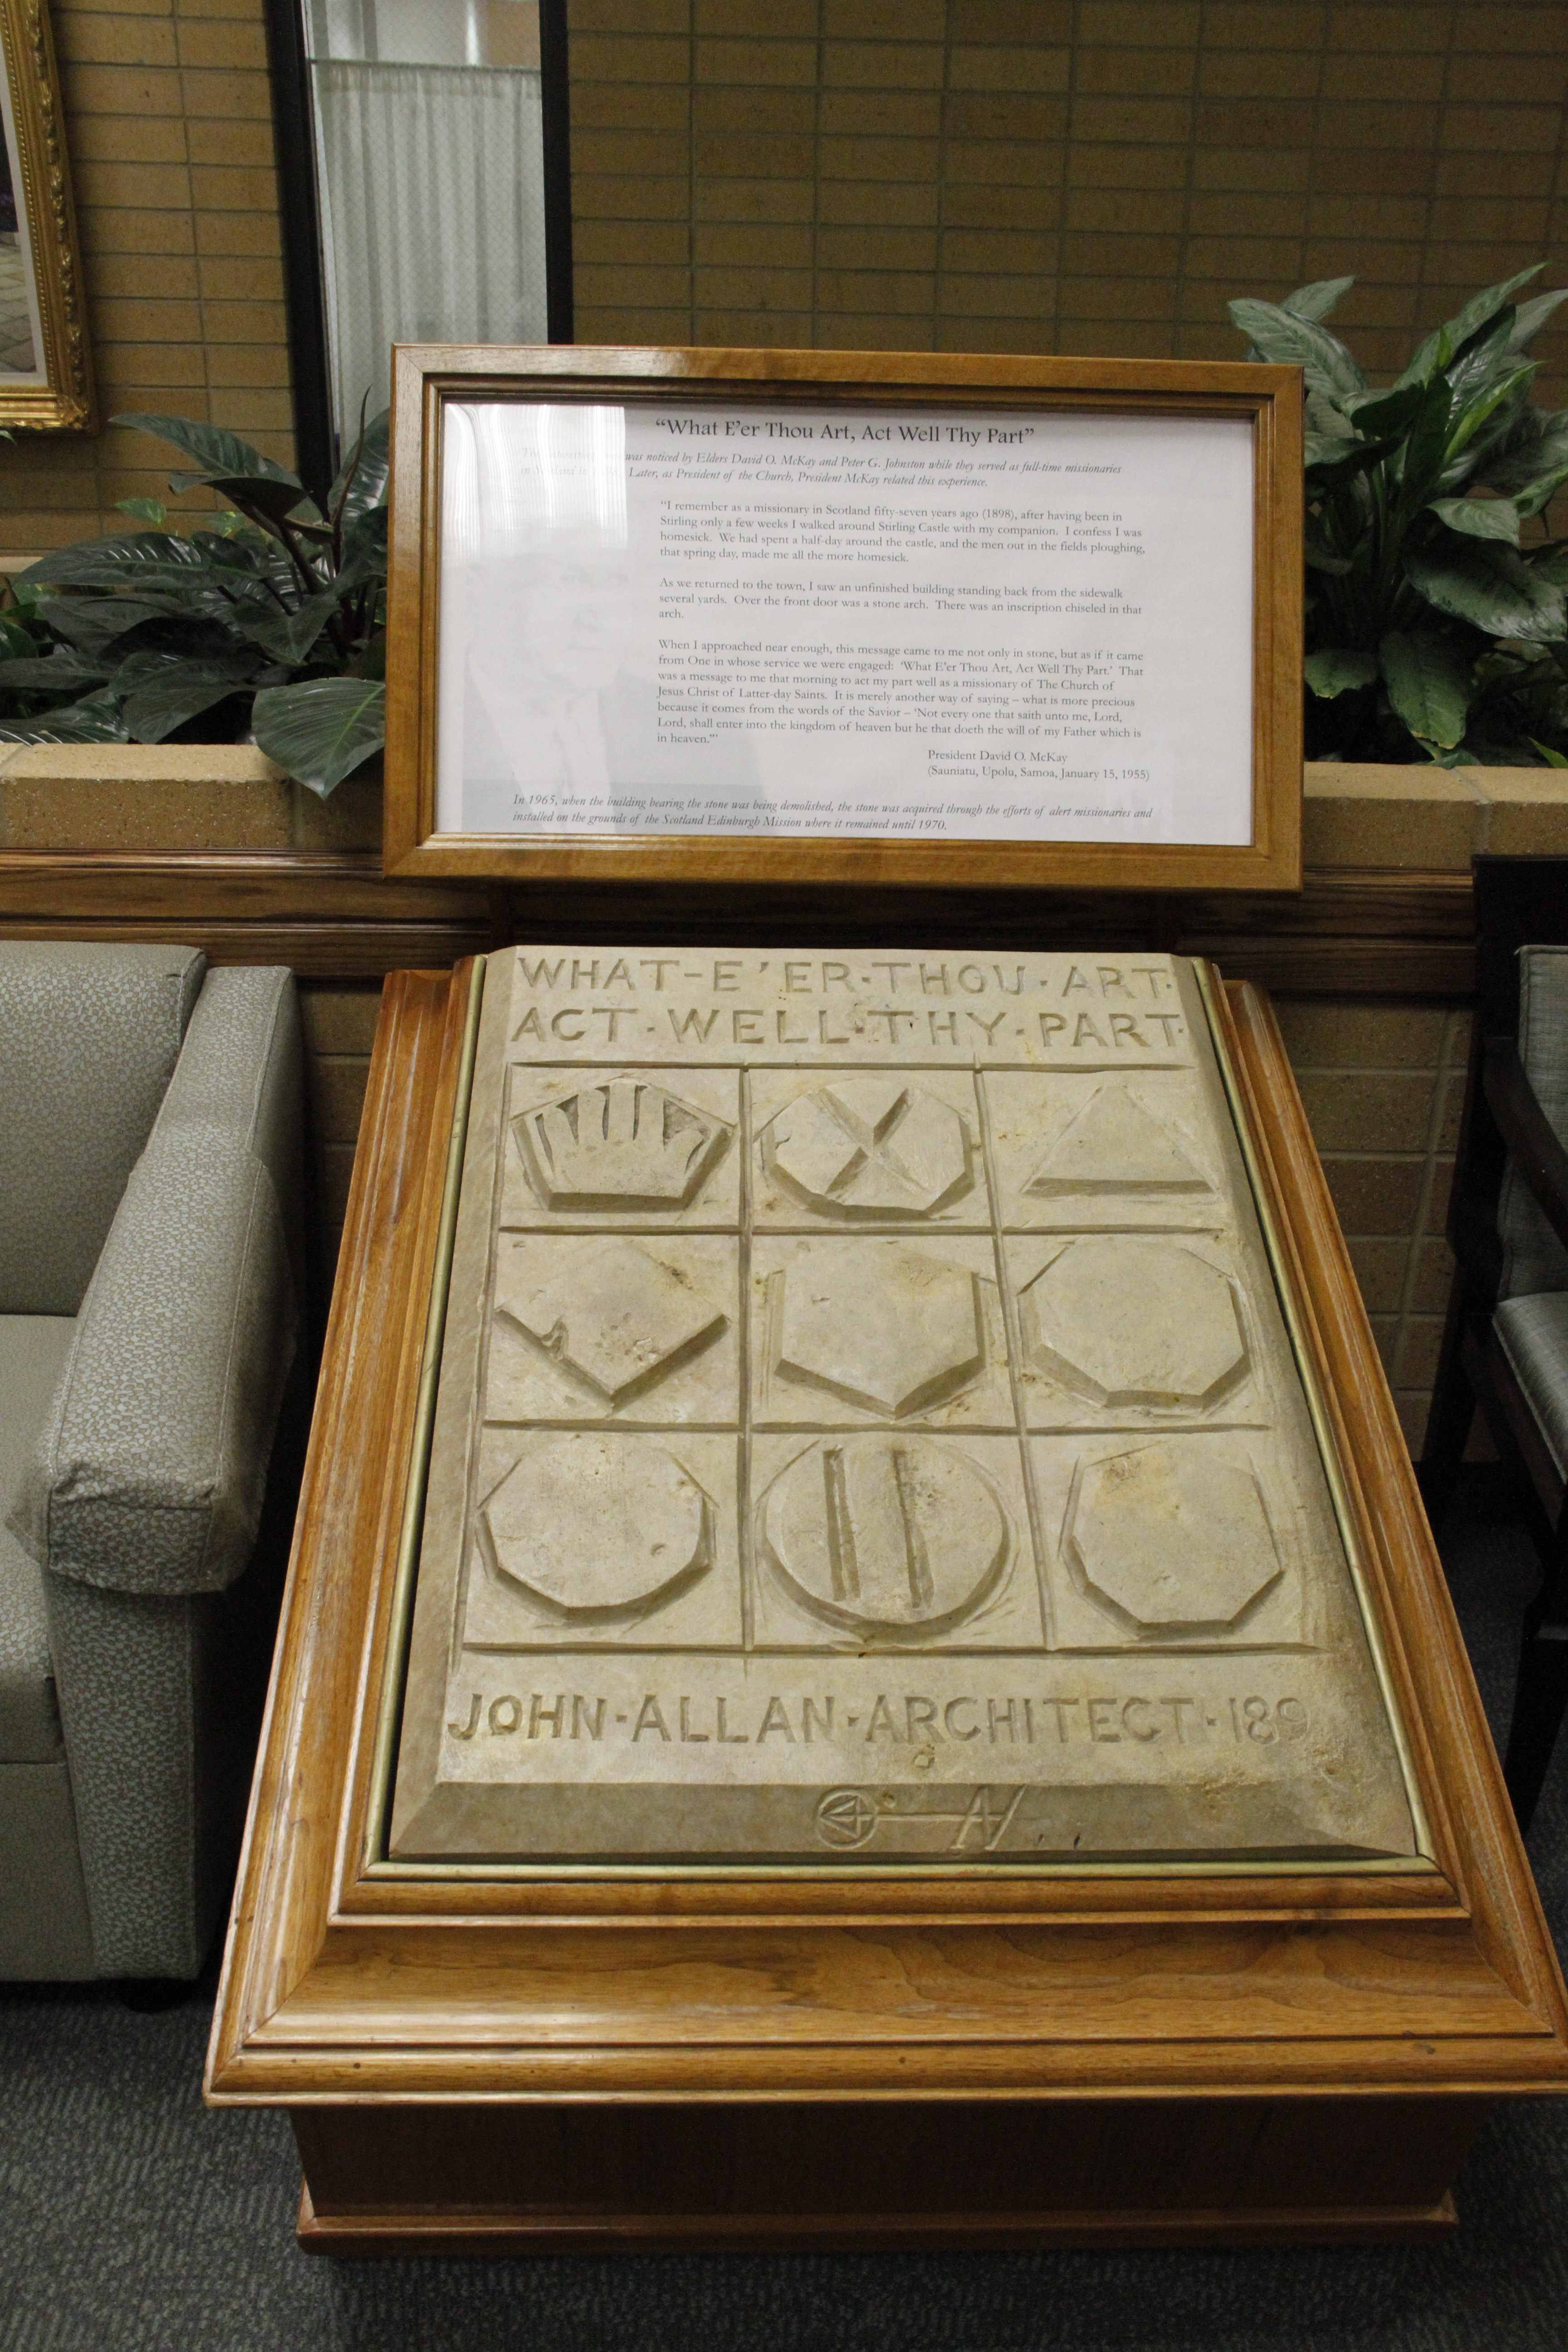 Wednesday, Feb.1, 2012.50th anniversary of language training for missionaries. Devotional at Provo Missionary Training Center featuring Elder M. Russell Ballard as speaker. In MTC lobby is replica of stone seen by Elder David O. McKay while a missionry in Scotland. It was a pivotal moment for his mission. Elder Nelson told the story in his talk.